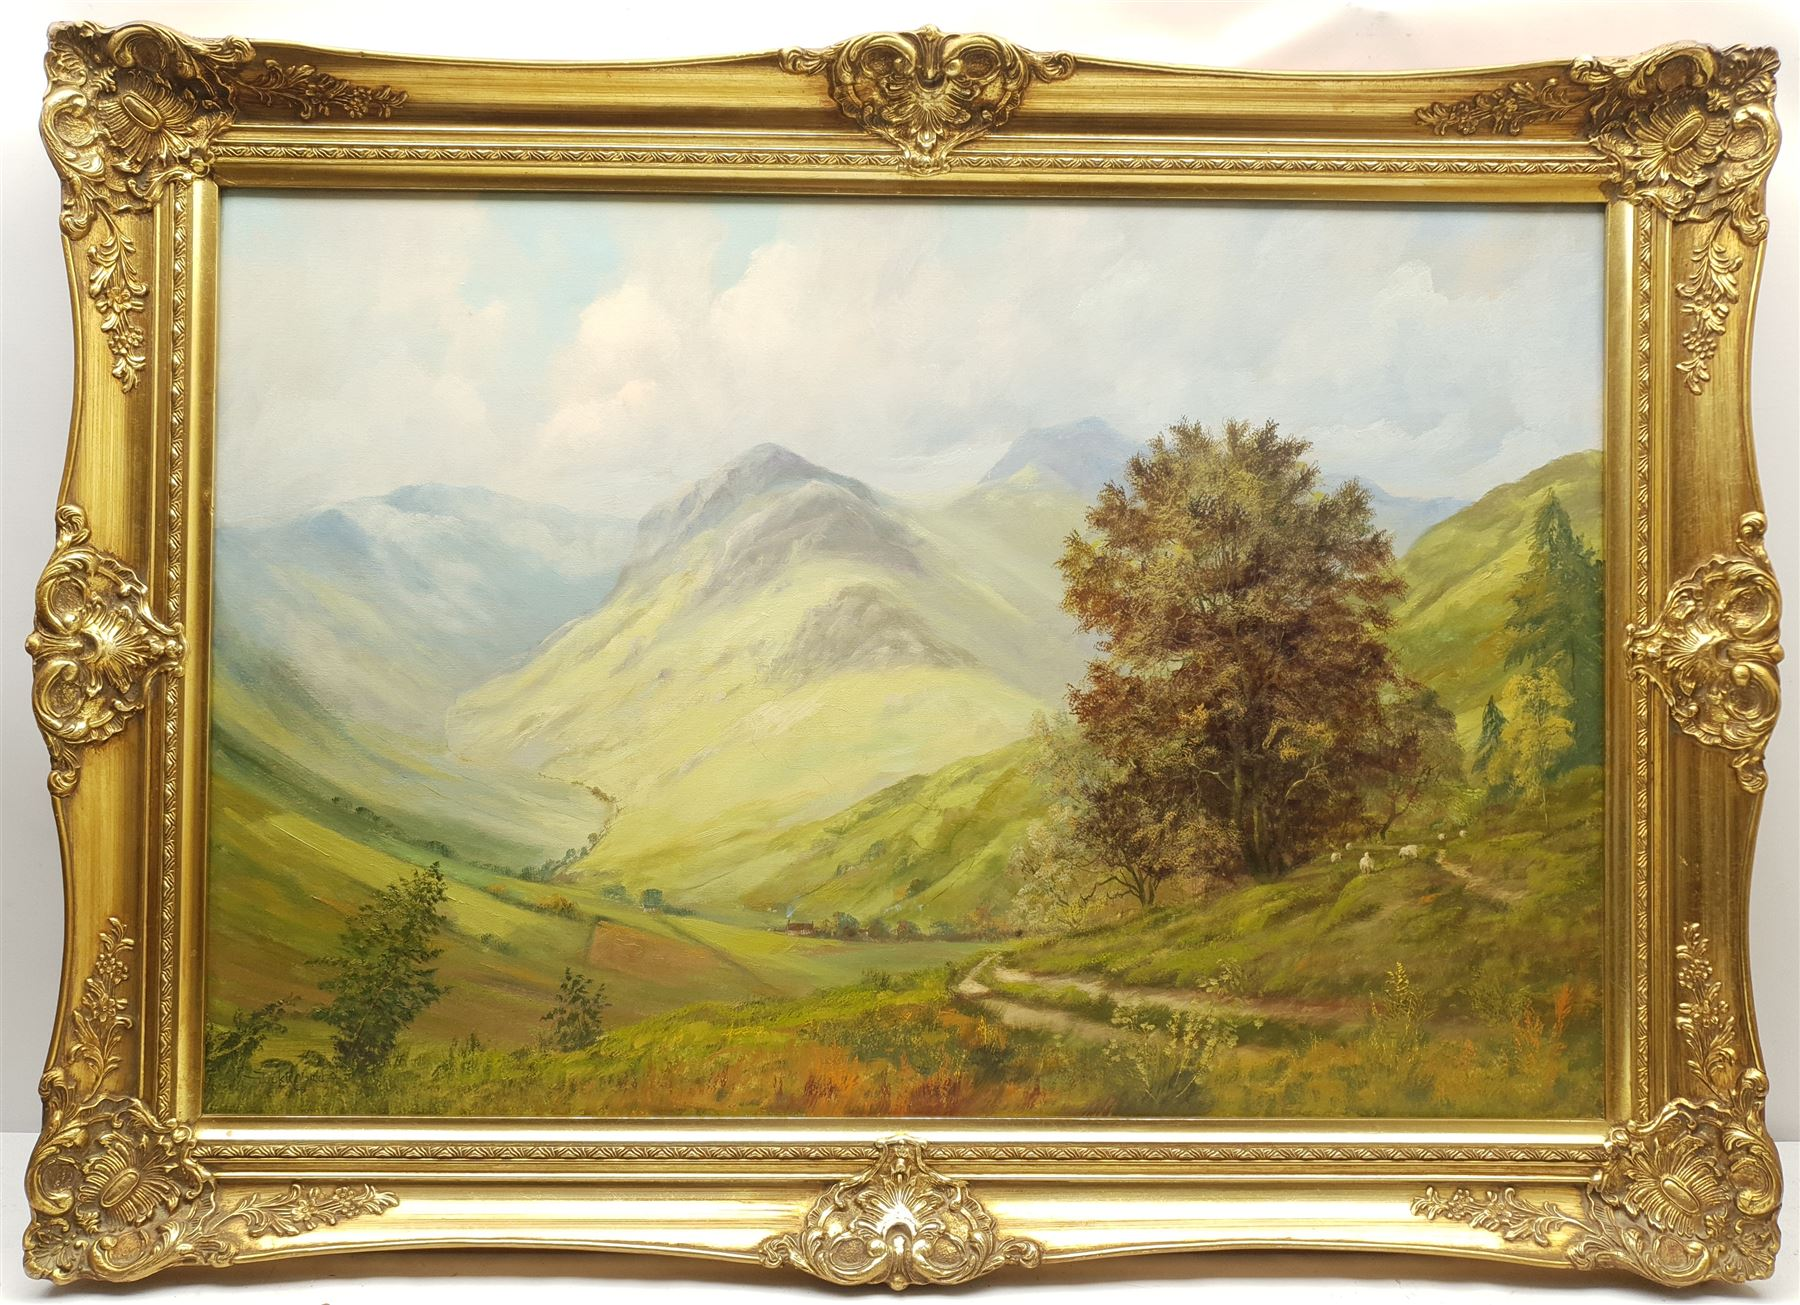 Jack R Mould (British 1925-1998): Mountain Valley - Image 2 of 2